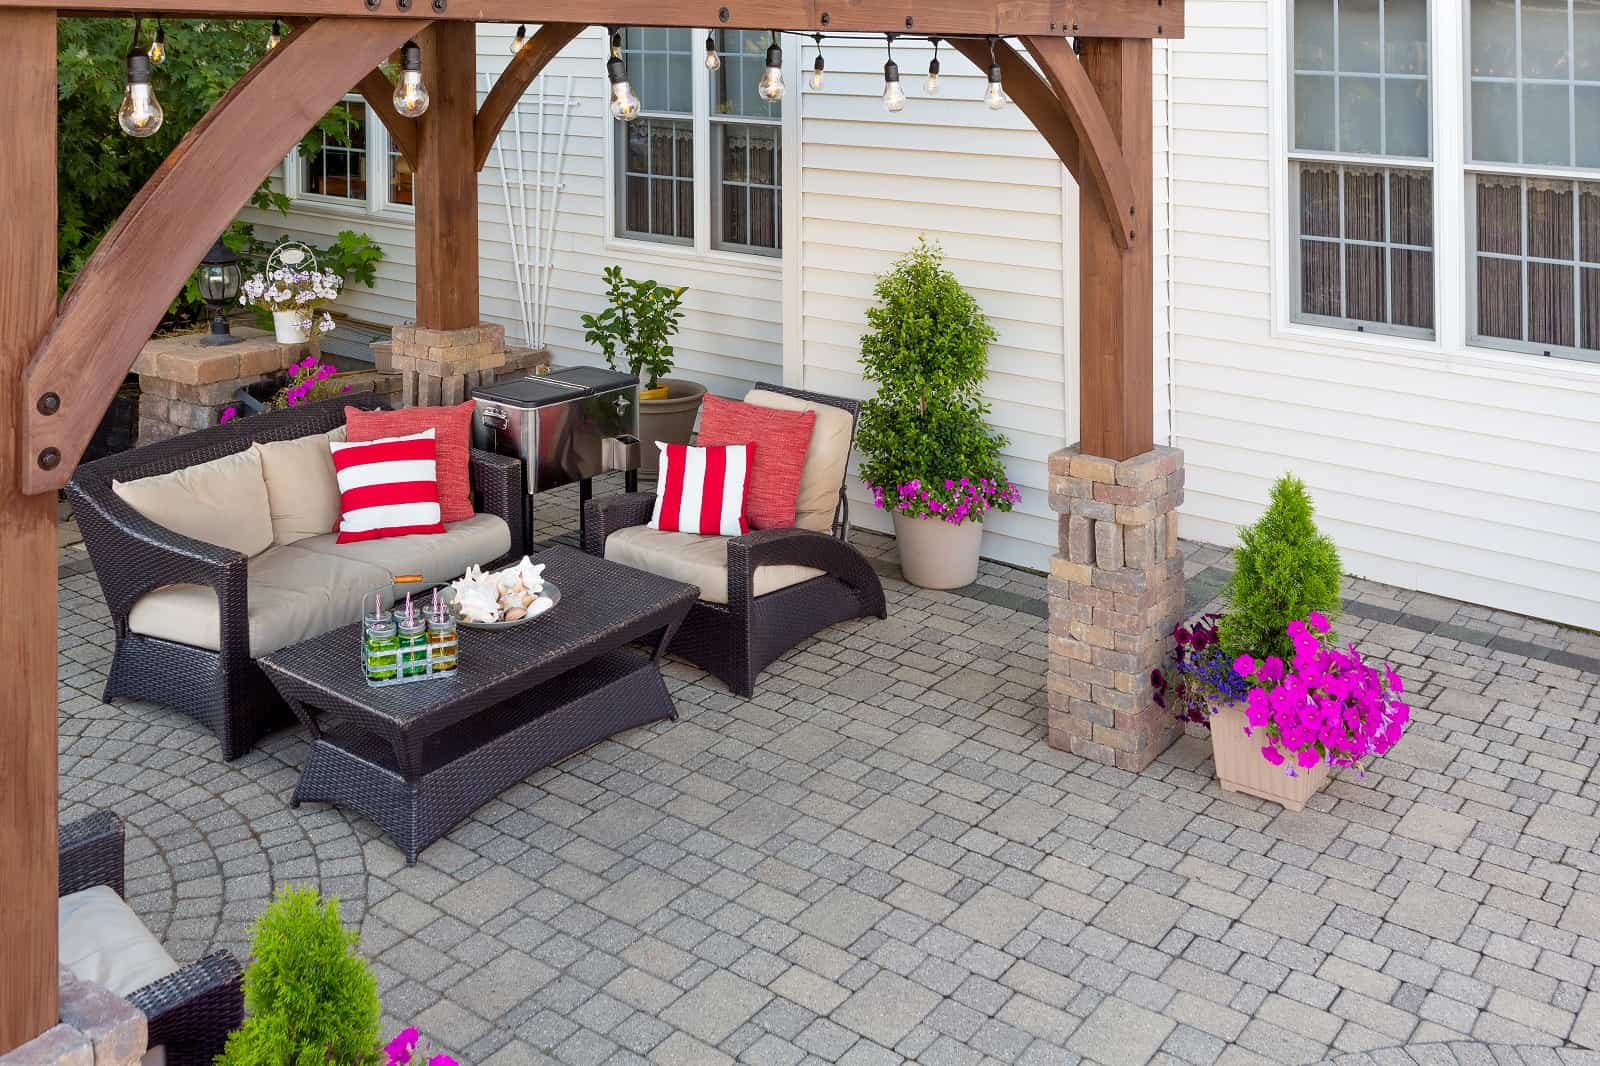 9 Ways To Liven Up Your Patio. Stone paved patio under the wooden awning with rattan furniture near the white sided house